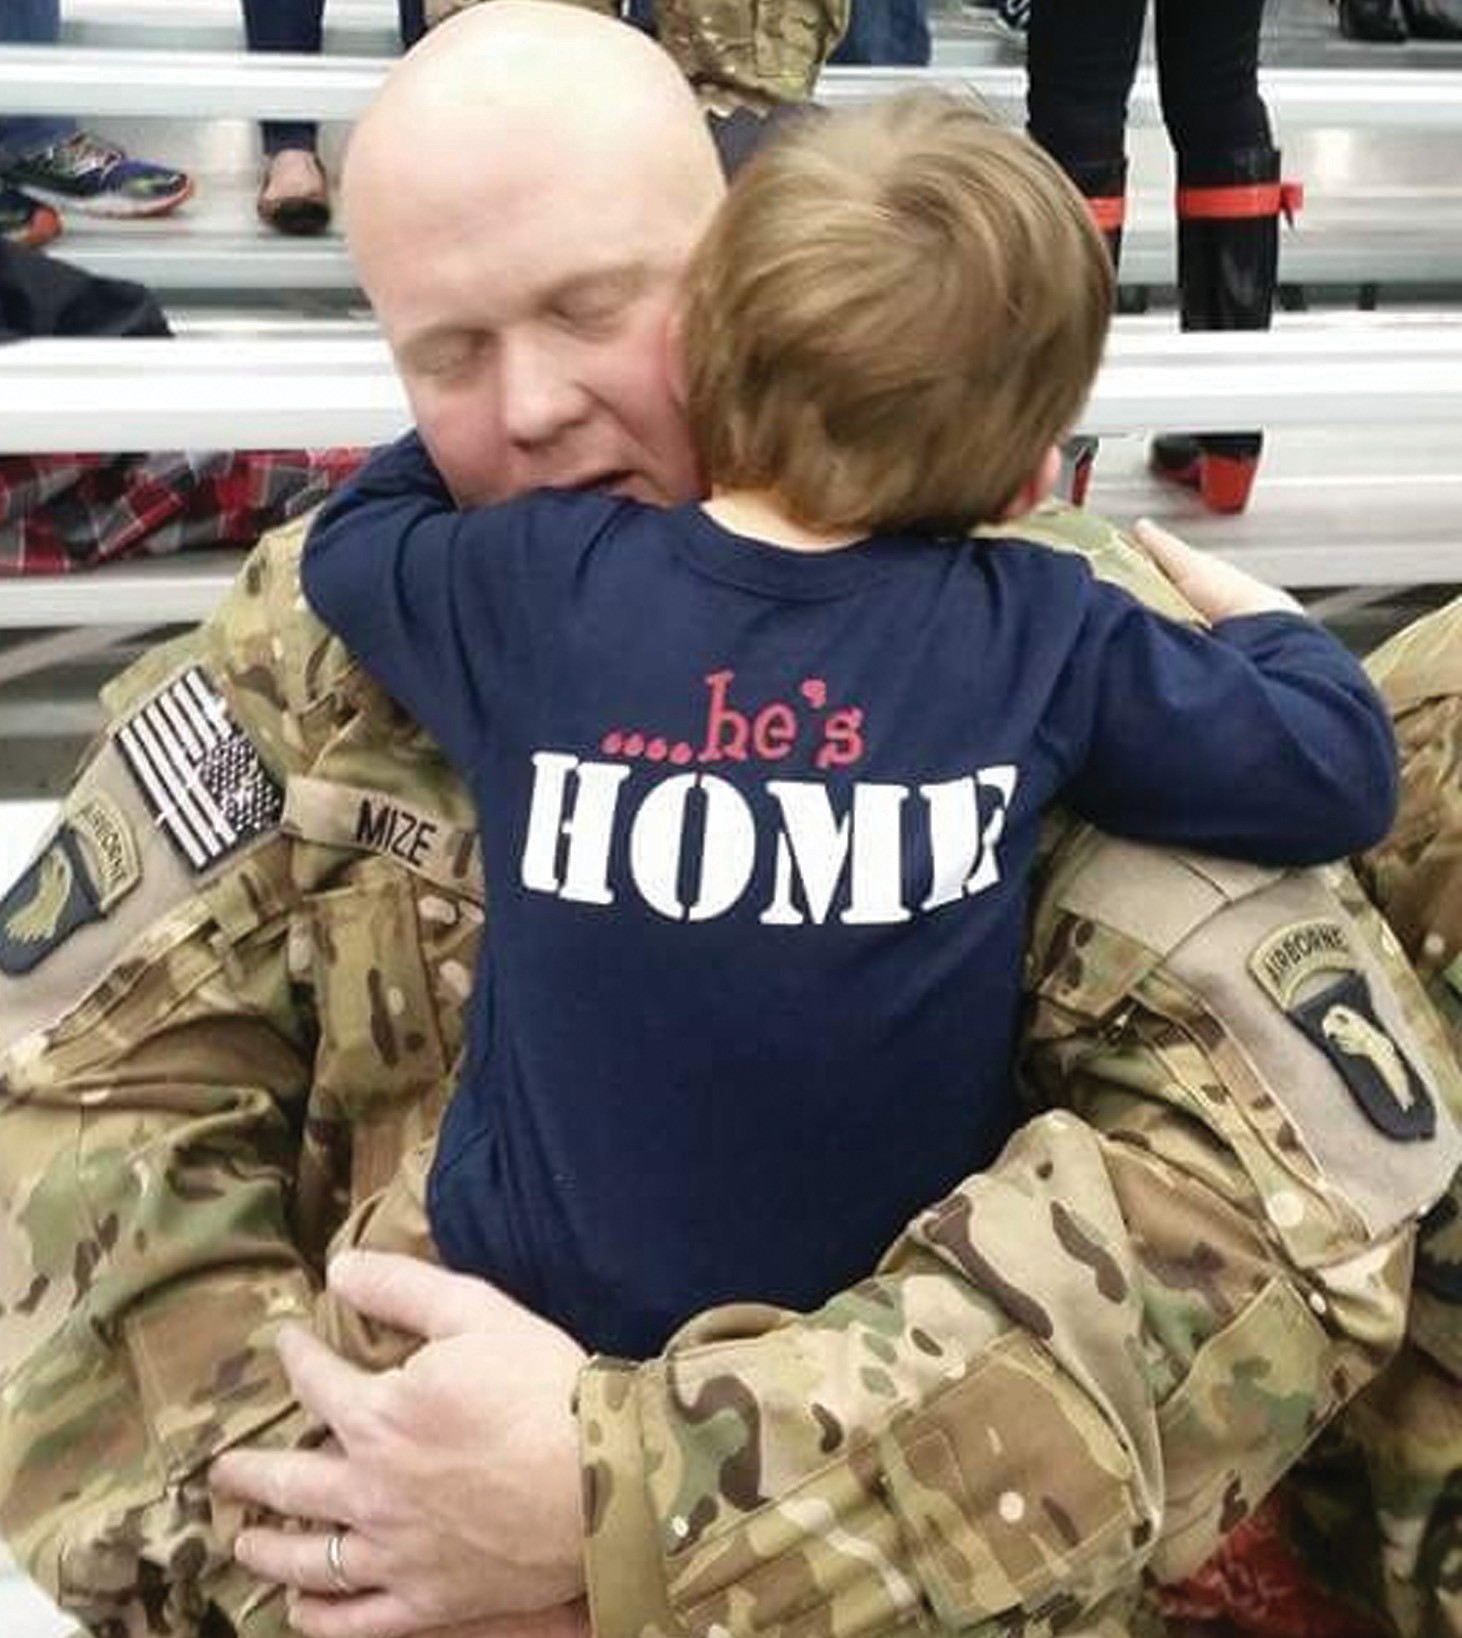 On Jan. 15, upon his return from serving nine months in Bagram, Afghanistan, Army Staff Sgt. Jonathan Mize received a warm welcome from his 3-year-old son, Huston. Mize, a 1998 Locust Fork graduate, has served multiple tours as a flight engineer with the 101st Airborne Division. Now stationed at Fort Campbell, he lives in Clarksville, Tenn., with his wife Jessica, who took the photo of Mize and Huston.'This tour was way tougher because Huston understood Daddy wasn't home,' Mize said. 'When I returned, it was loud, and Huston was scared, but once he warmed up to me and hugged me, I just broke down. It was pure joy.' – Nicole Singleton